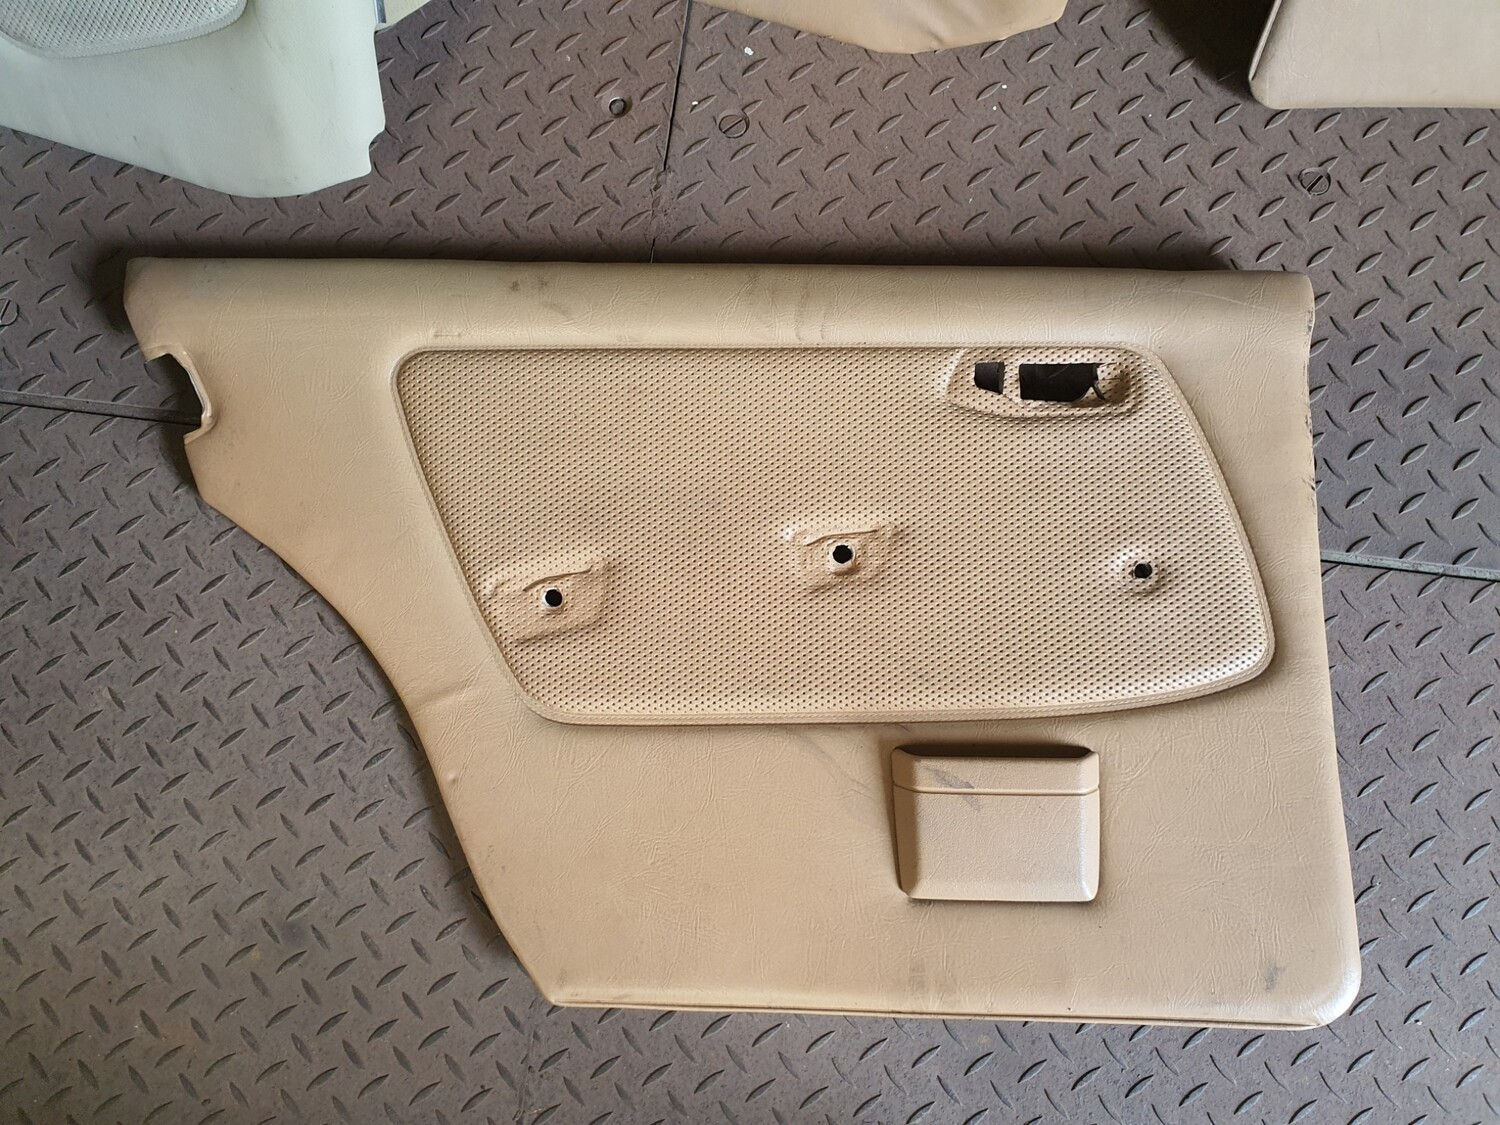 Mercedes-Benz Left Rear Door Card Caramel (W123)